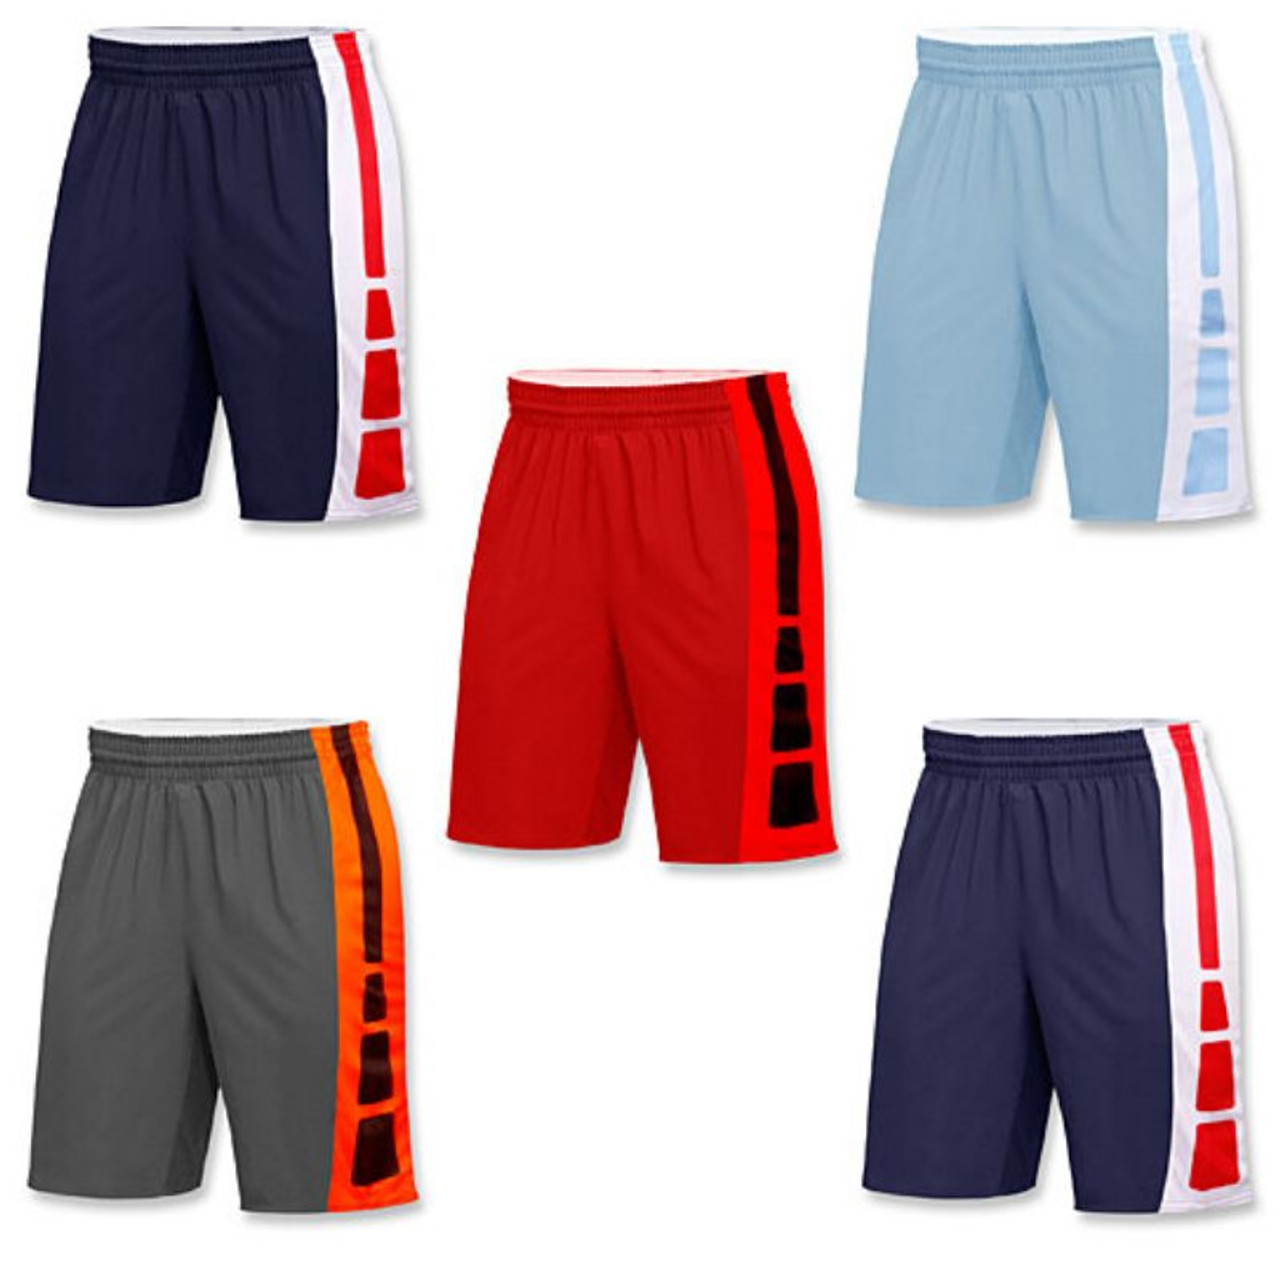 Mystery Deal: Men's Active Athletic Performance Shorts - 5 Pack